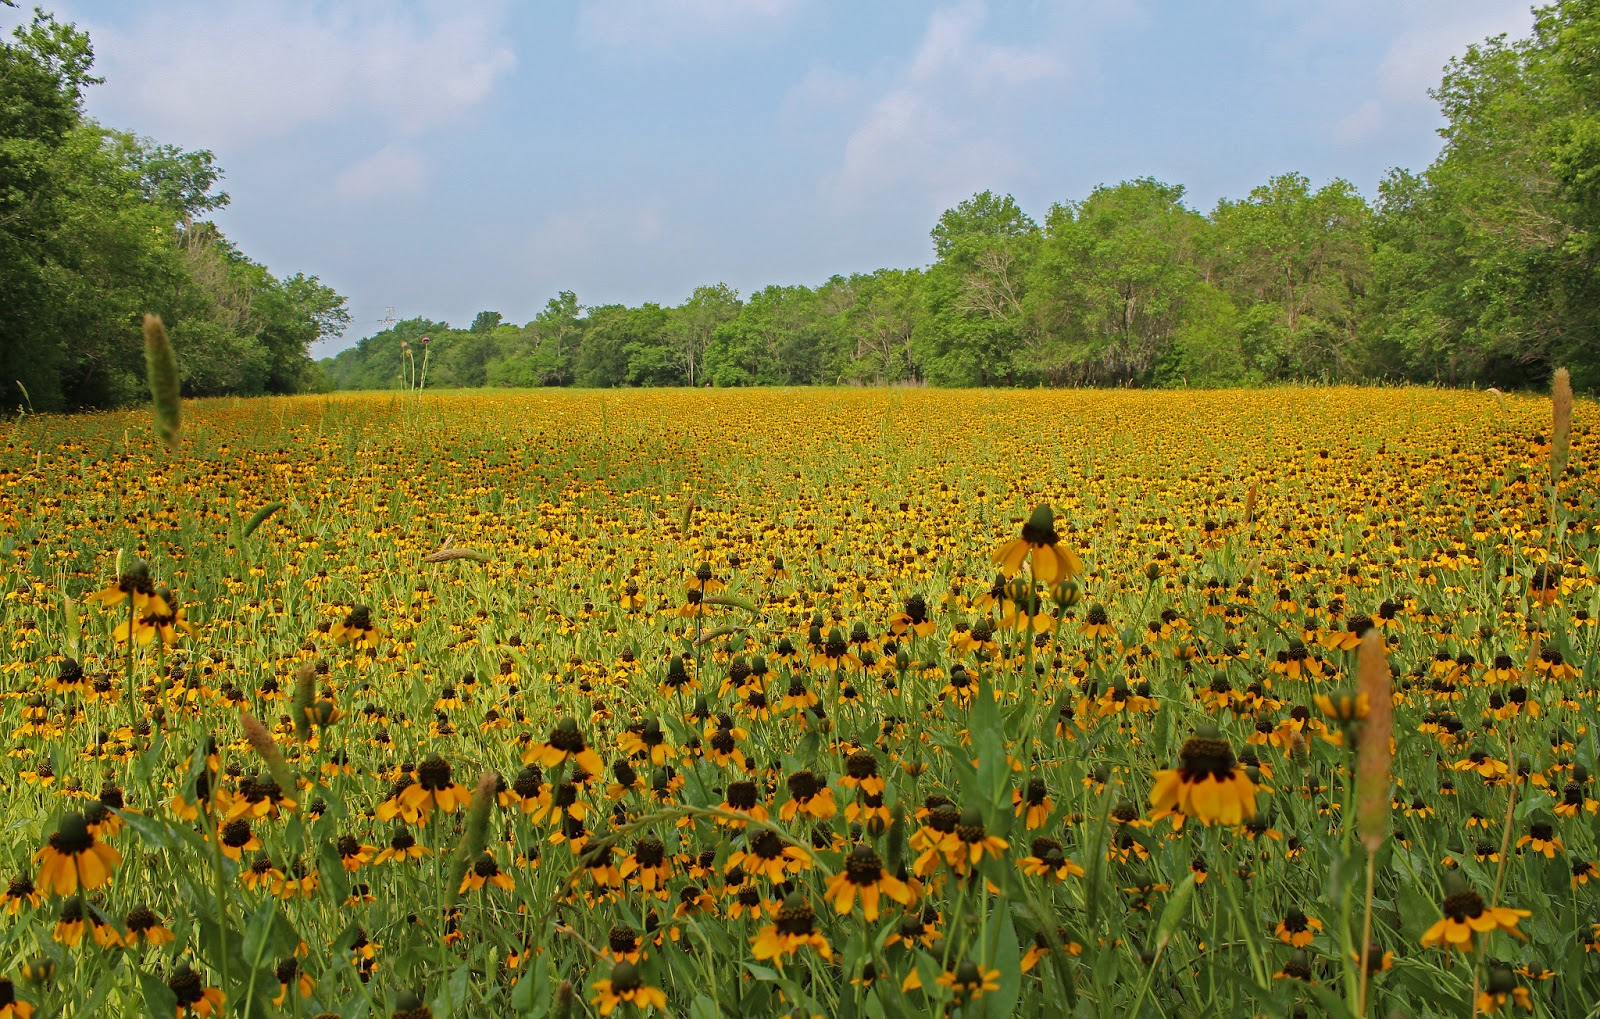 Dallas Trinity Trails The Largest Wildflower Meadow In Dallas